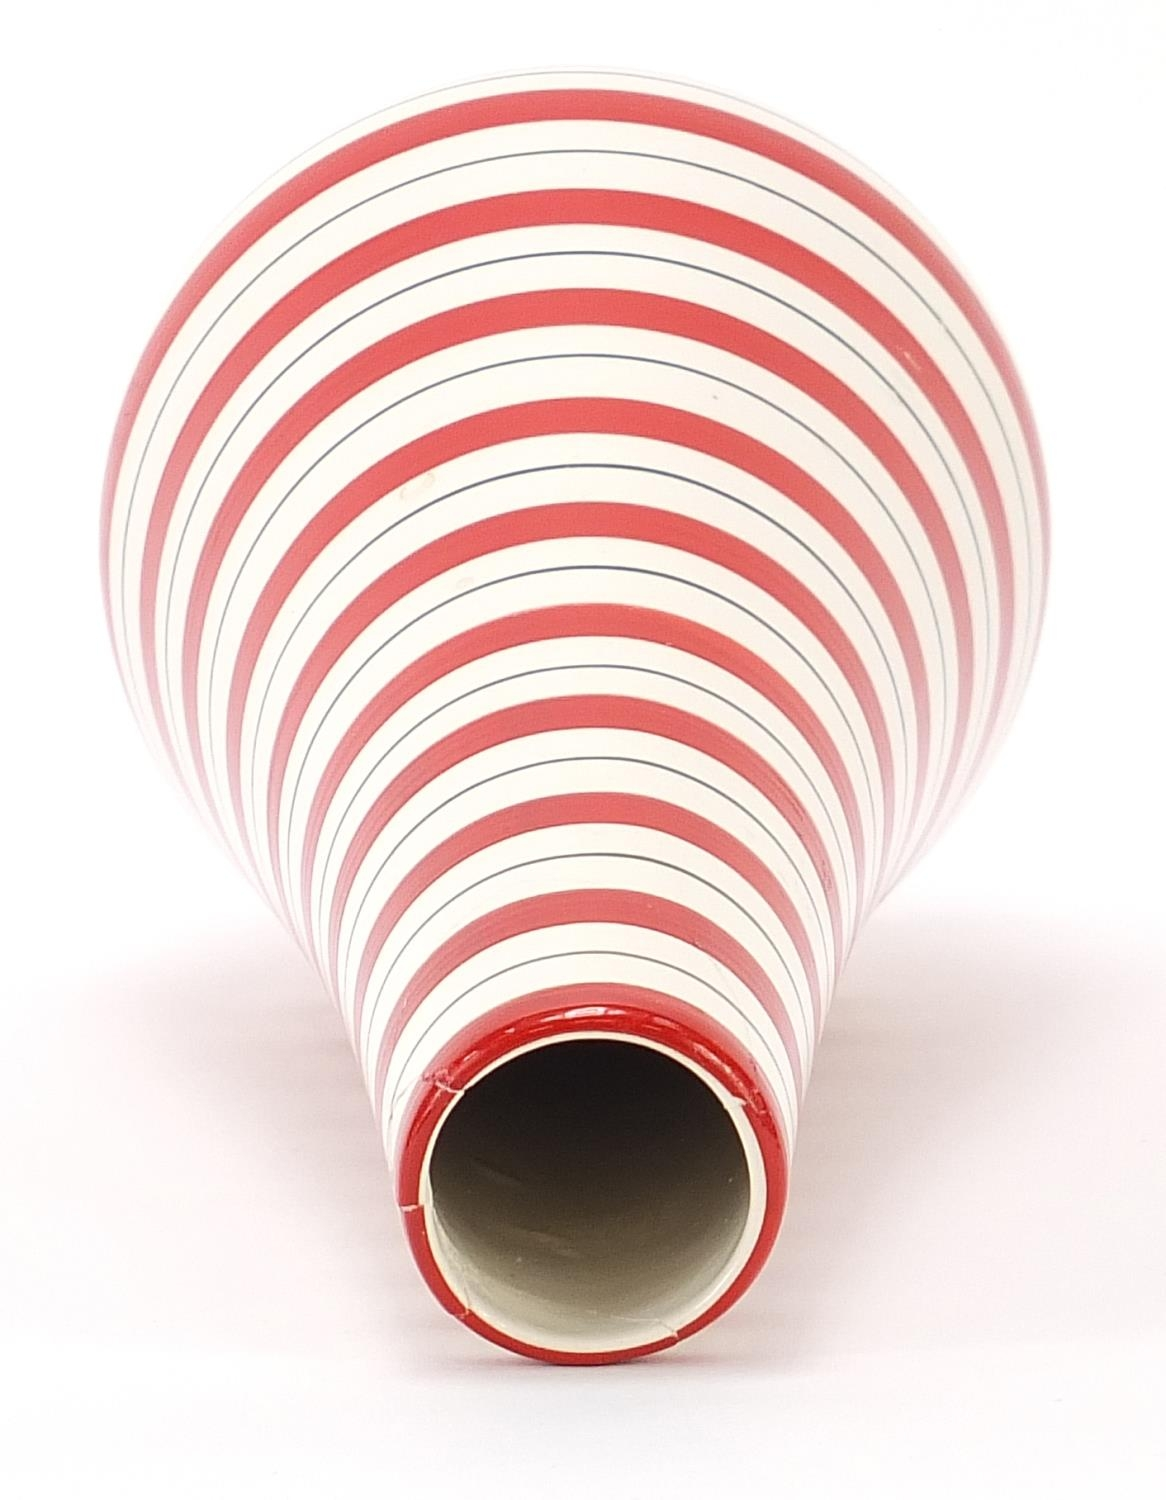 Jessie Tait for Midwinter, modern vase with painted red stripes, 28.5cm high : For Further Condition - Image 3 of 5